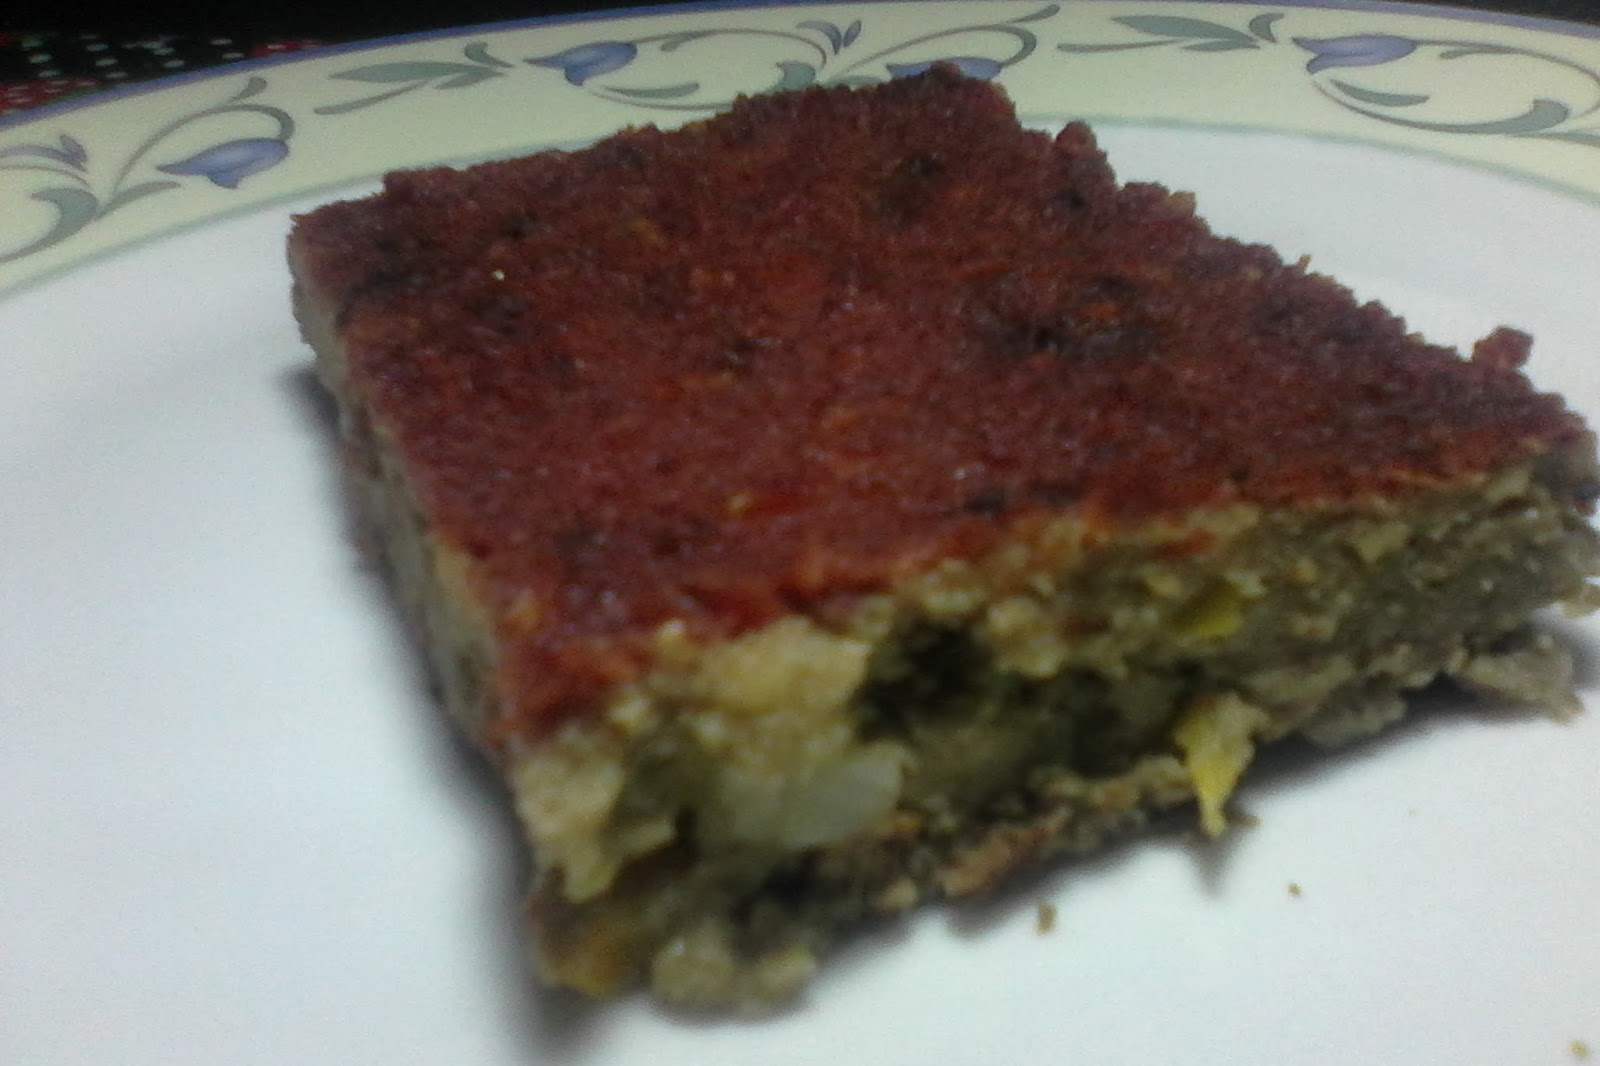 Cocina latina alkaline meatloaf dr sebi approved if someone would have made me this meatloaf and told me it was real meat not mushroom garbanzos i would have believed them since this recipe is forumfinder Gallery